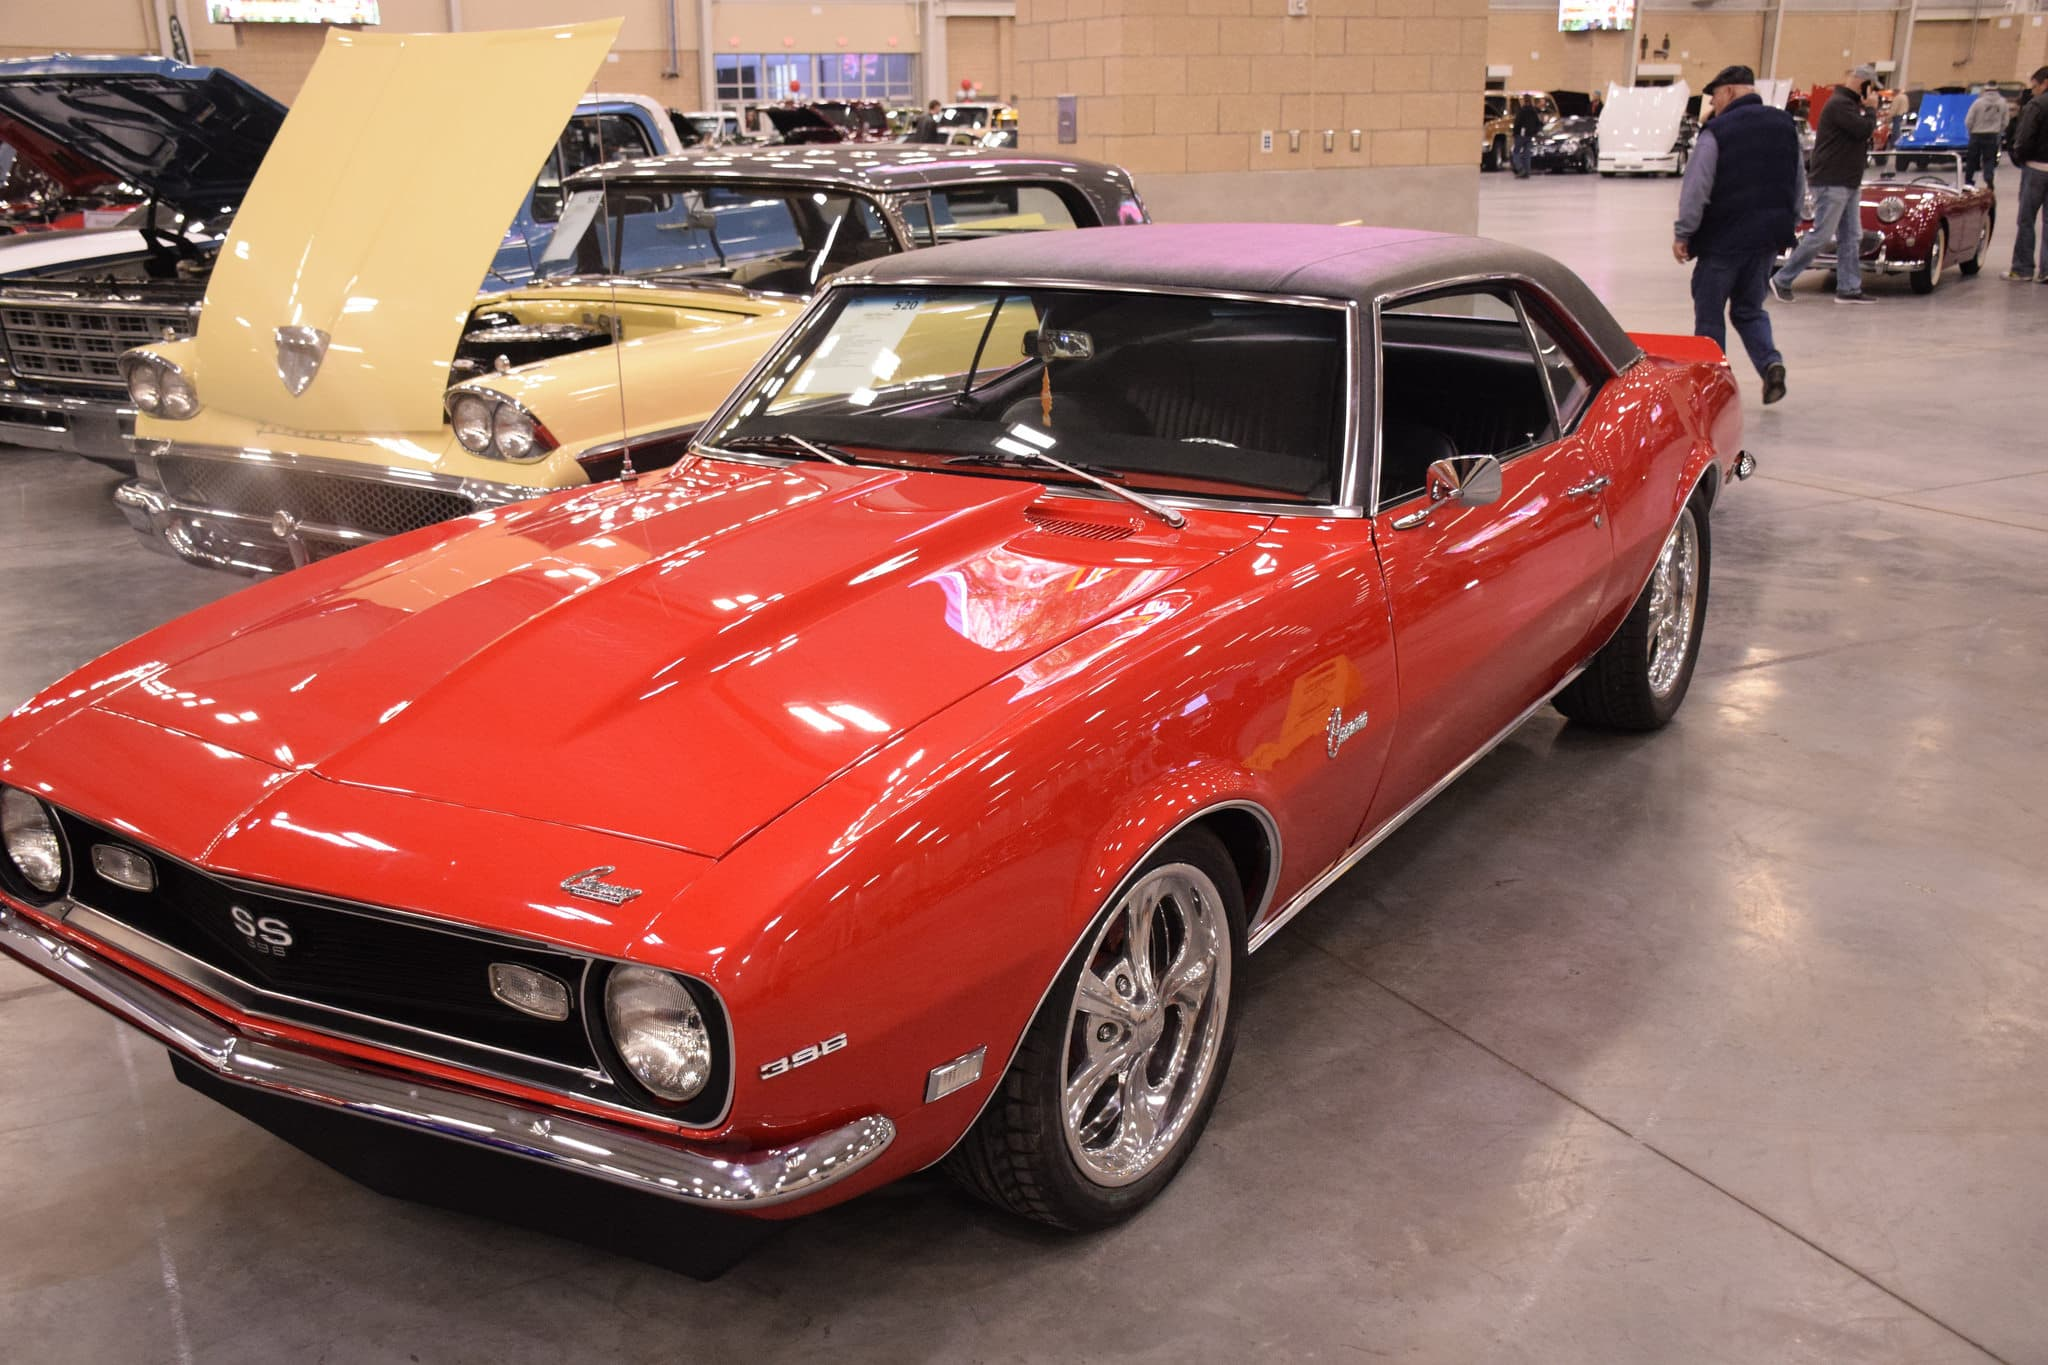 Red Chevrolet Camaro 396 SS